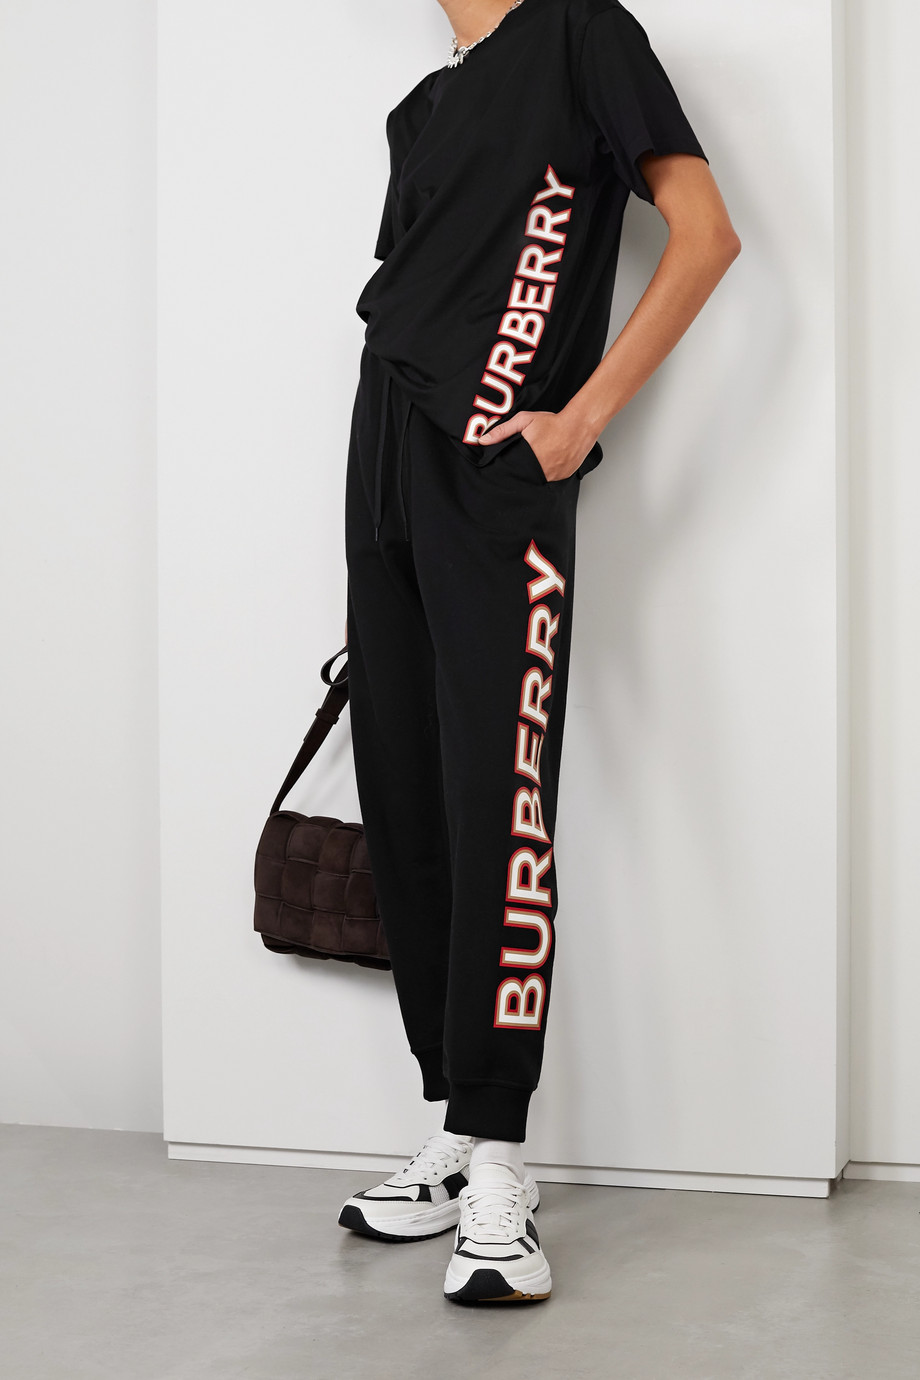 Burberry Oversized appliquéd cotton-jersey T-shirt